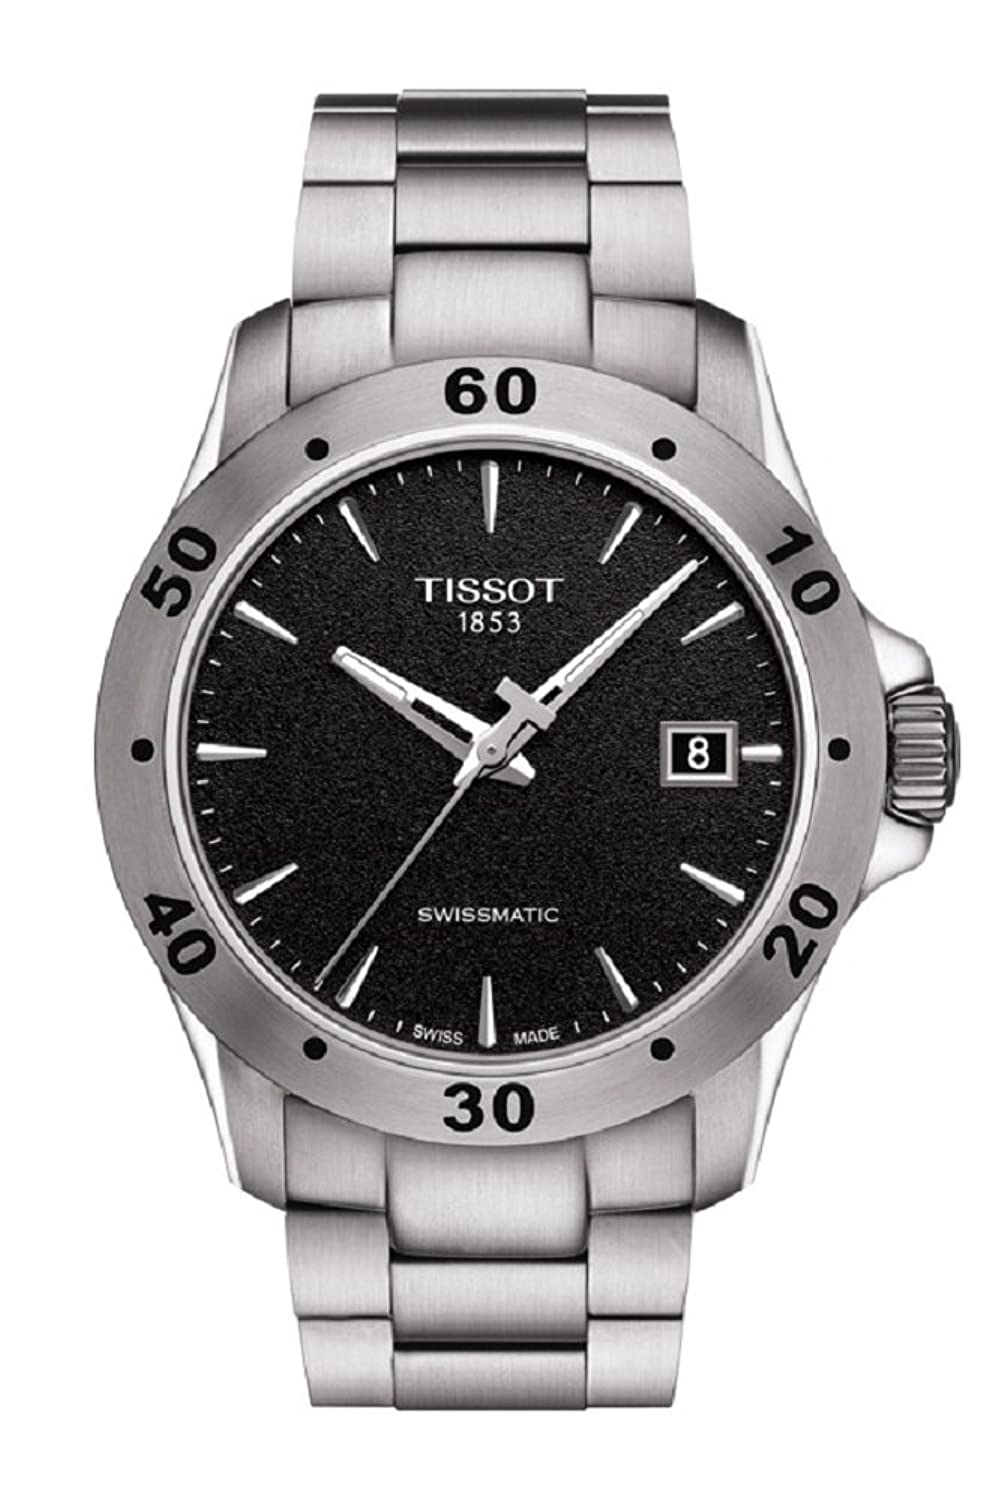 Tissot Men's V8 Swissmatic Stainless Steel Automatic Watch T1064071105100 by Tissot